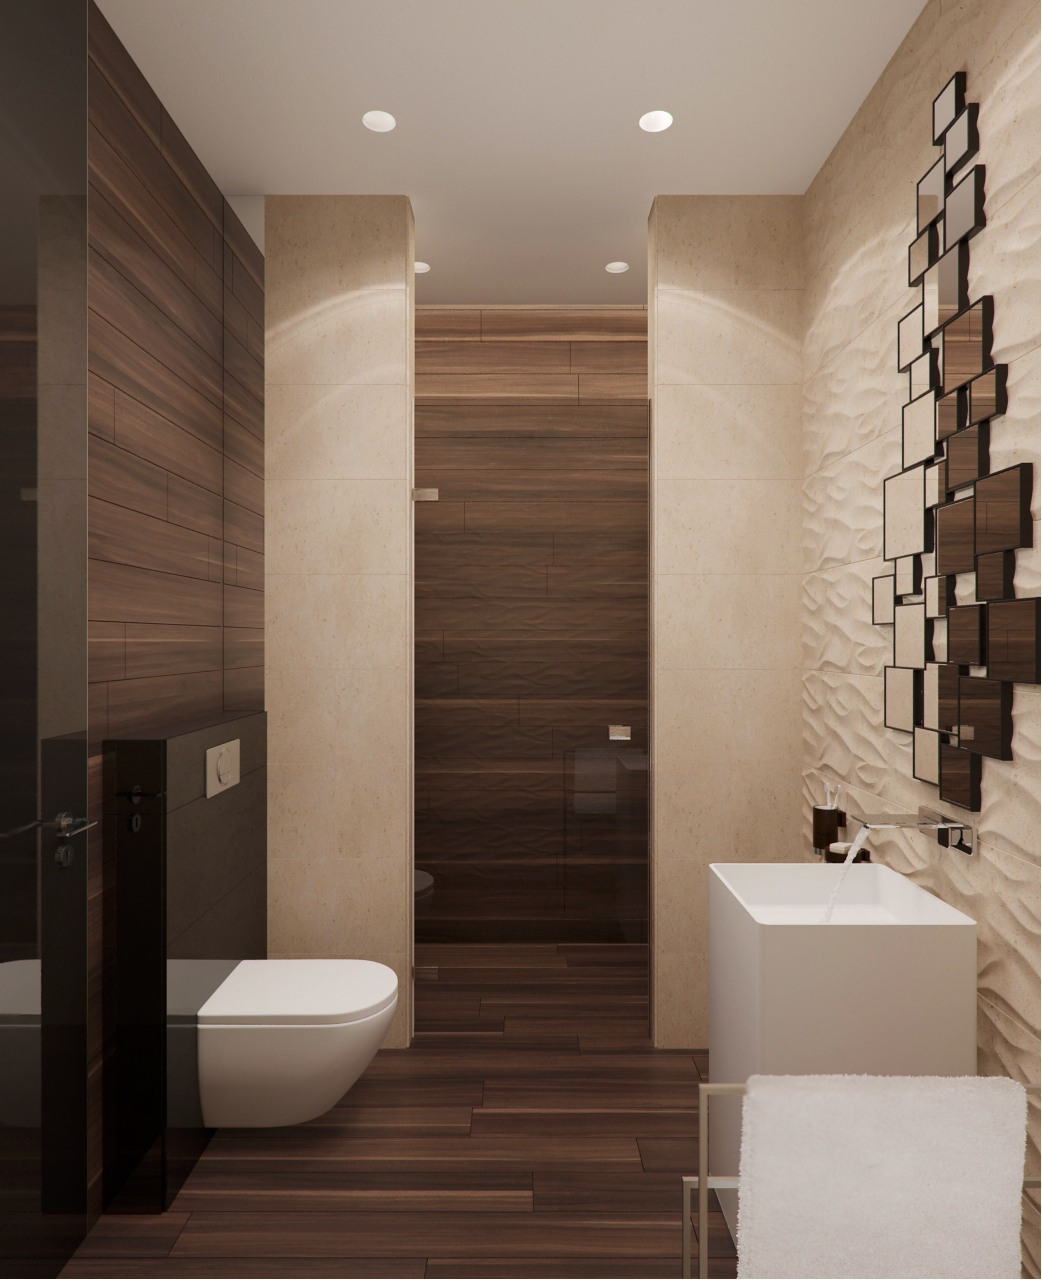 Wooden Bathroom Tiles: Stone And Wood Home With Creative Fixtures